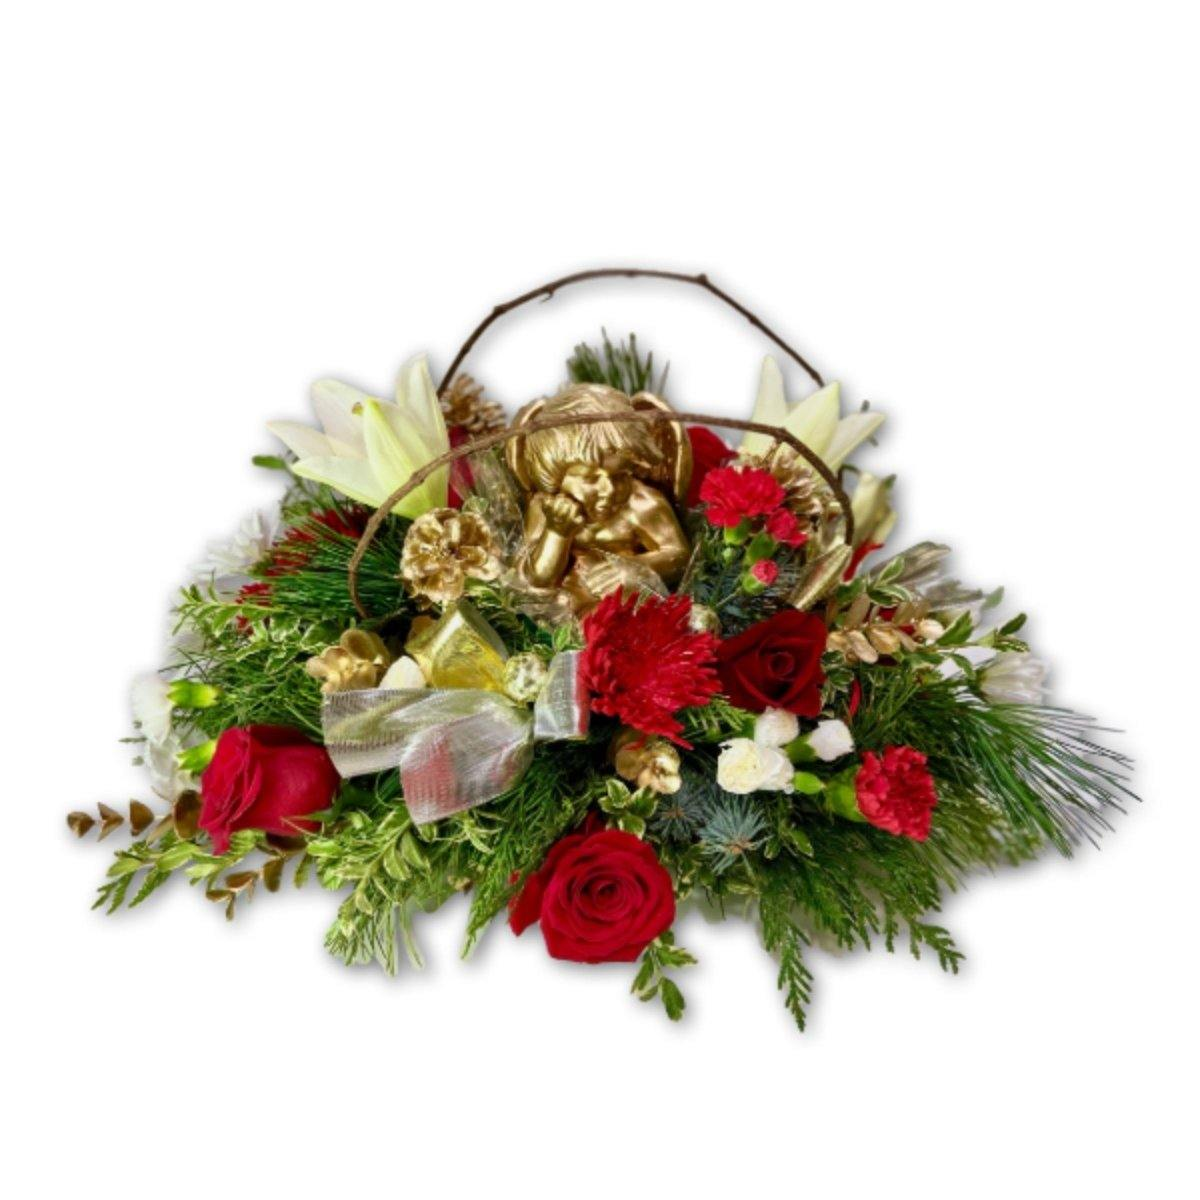 Angel Christmas Centerpiece - Shalimar Flower Shop